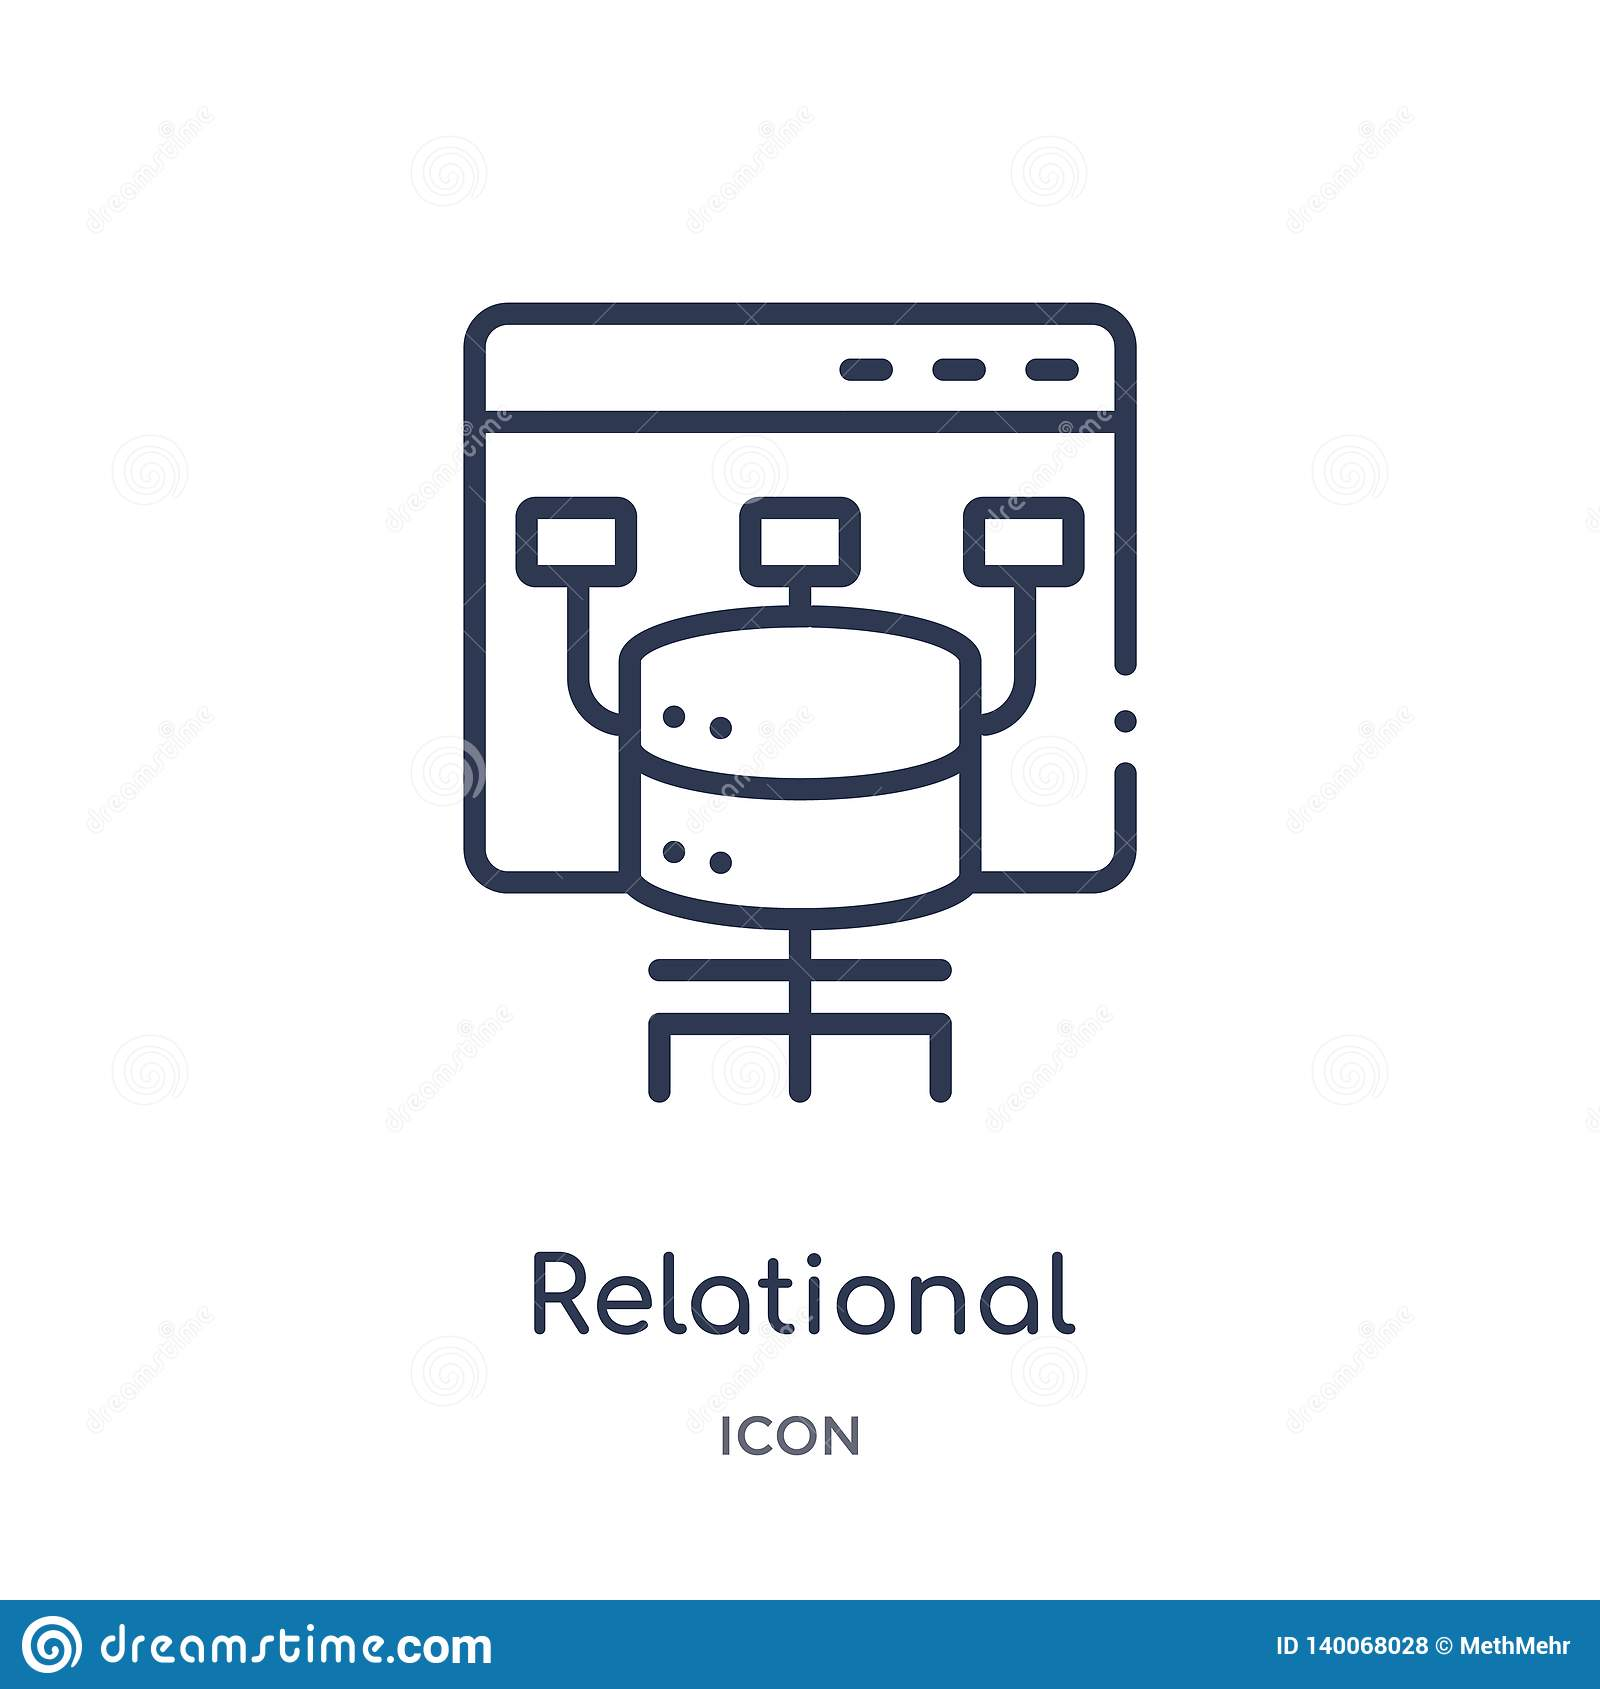 relational database management system icon from technology outline collection. Thin line relational database management system